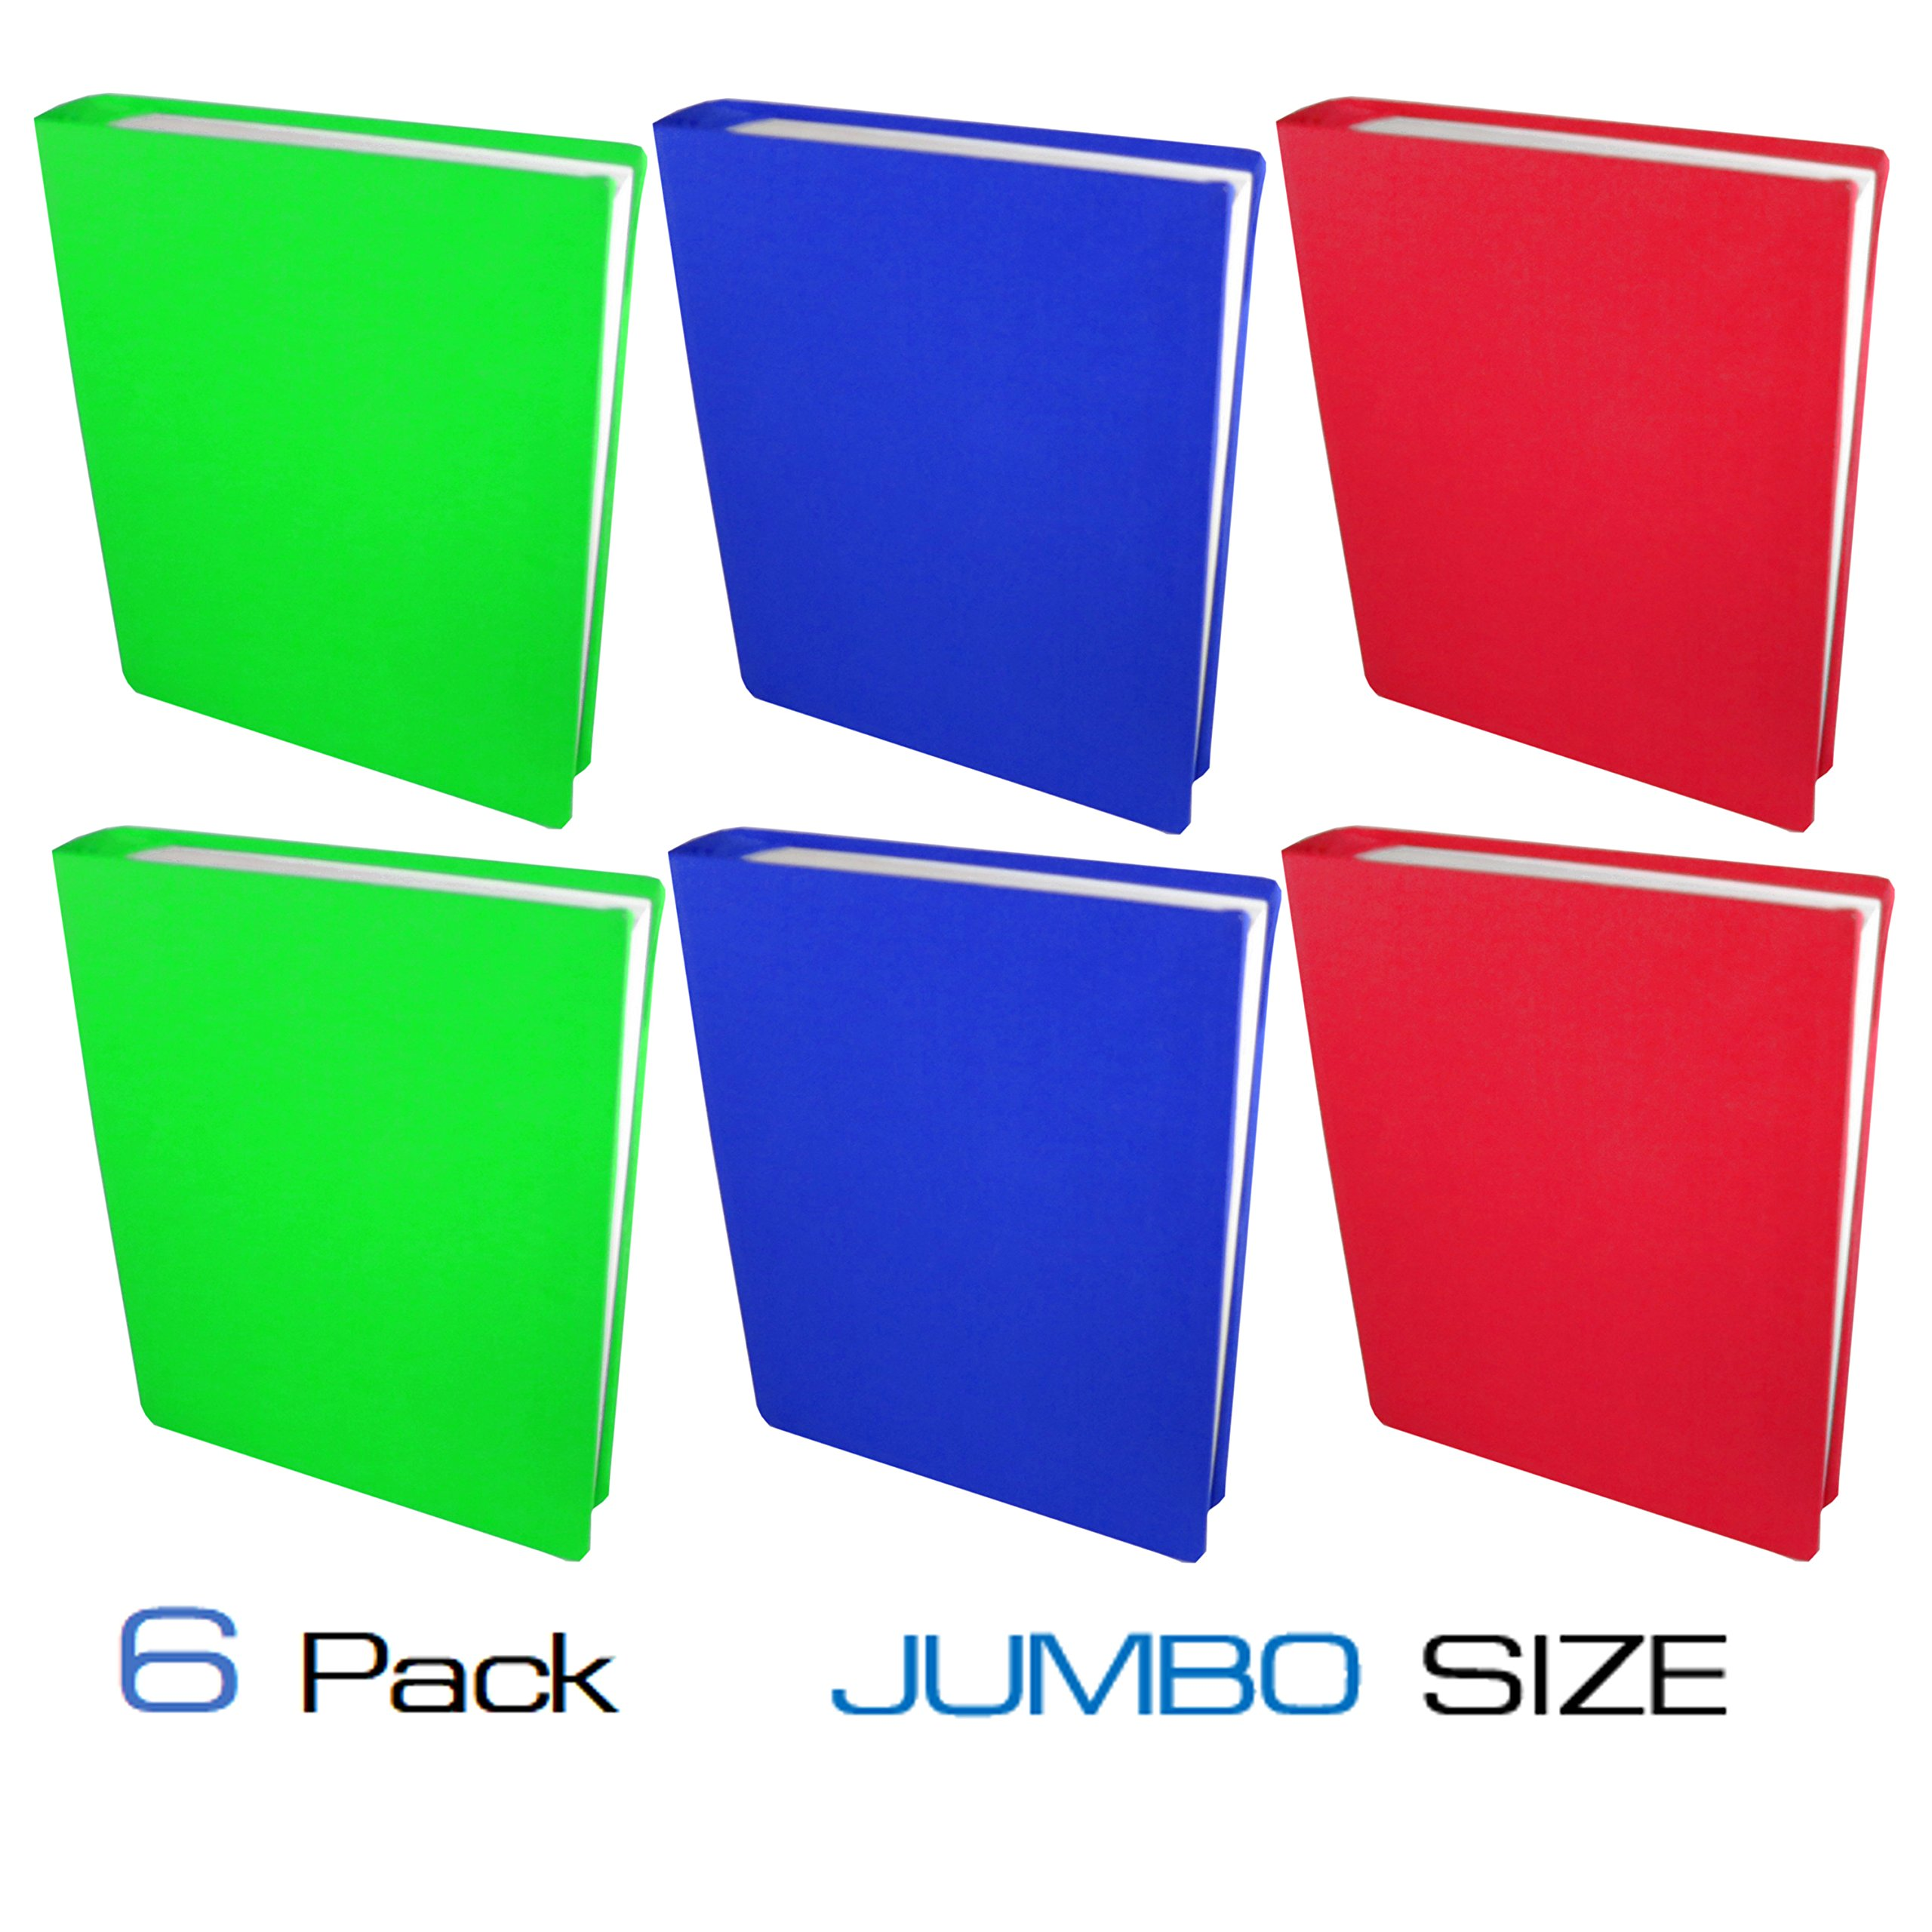 School Bell Supplies 6 Pack Jumbo Size Stretchable Book Covers: Easy to Apply, Reusable, Washable, Fits Hardcover Books/Textbooks from 8'' x 9.5'' up to 10'' x 15''